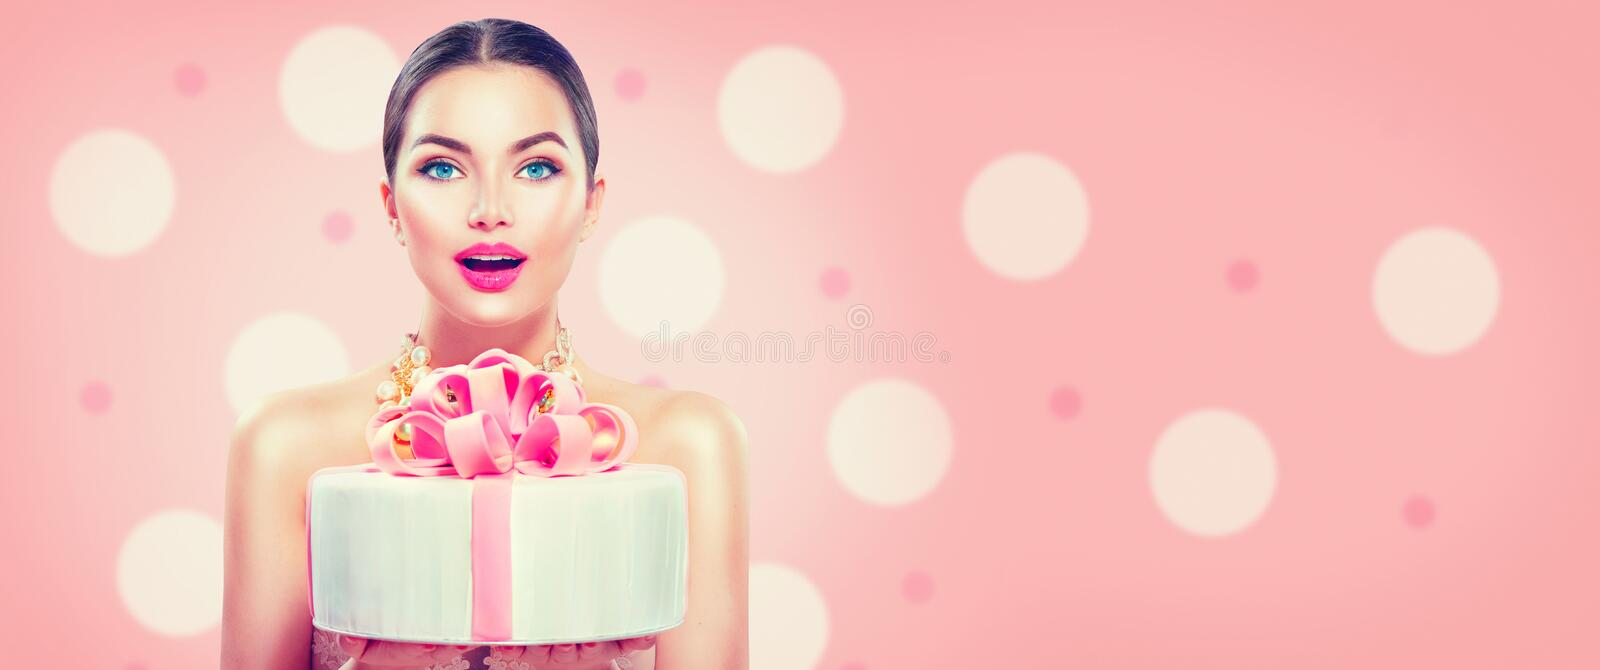 Fashion model girl holding beautiful party or birthday cake on pink background. Wide angle stock images